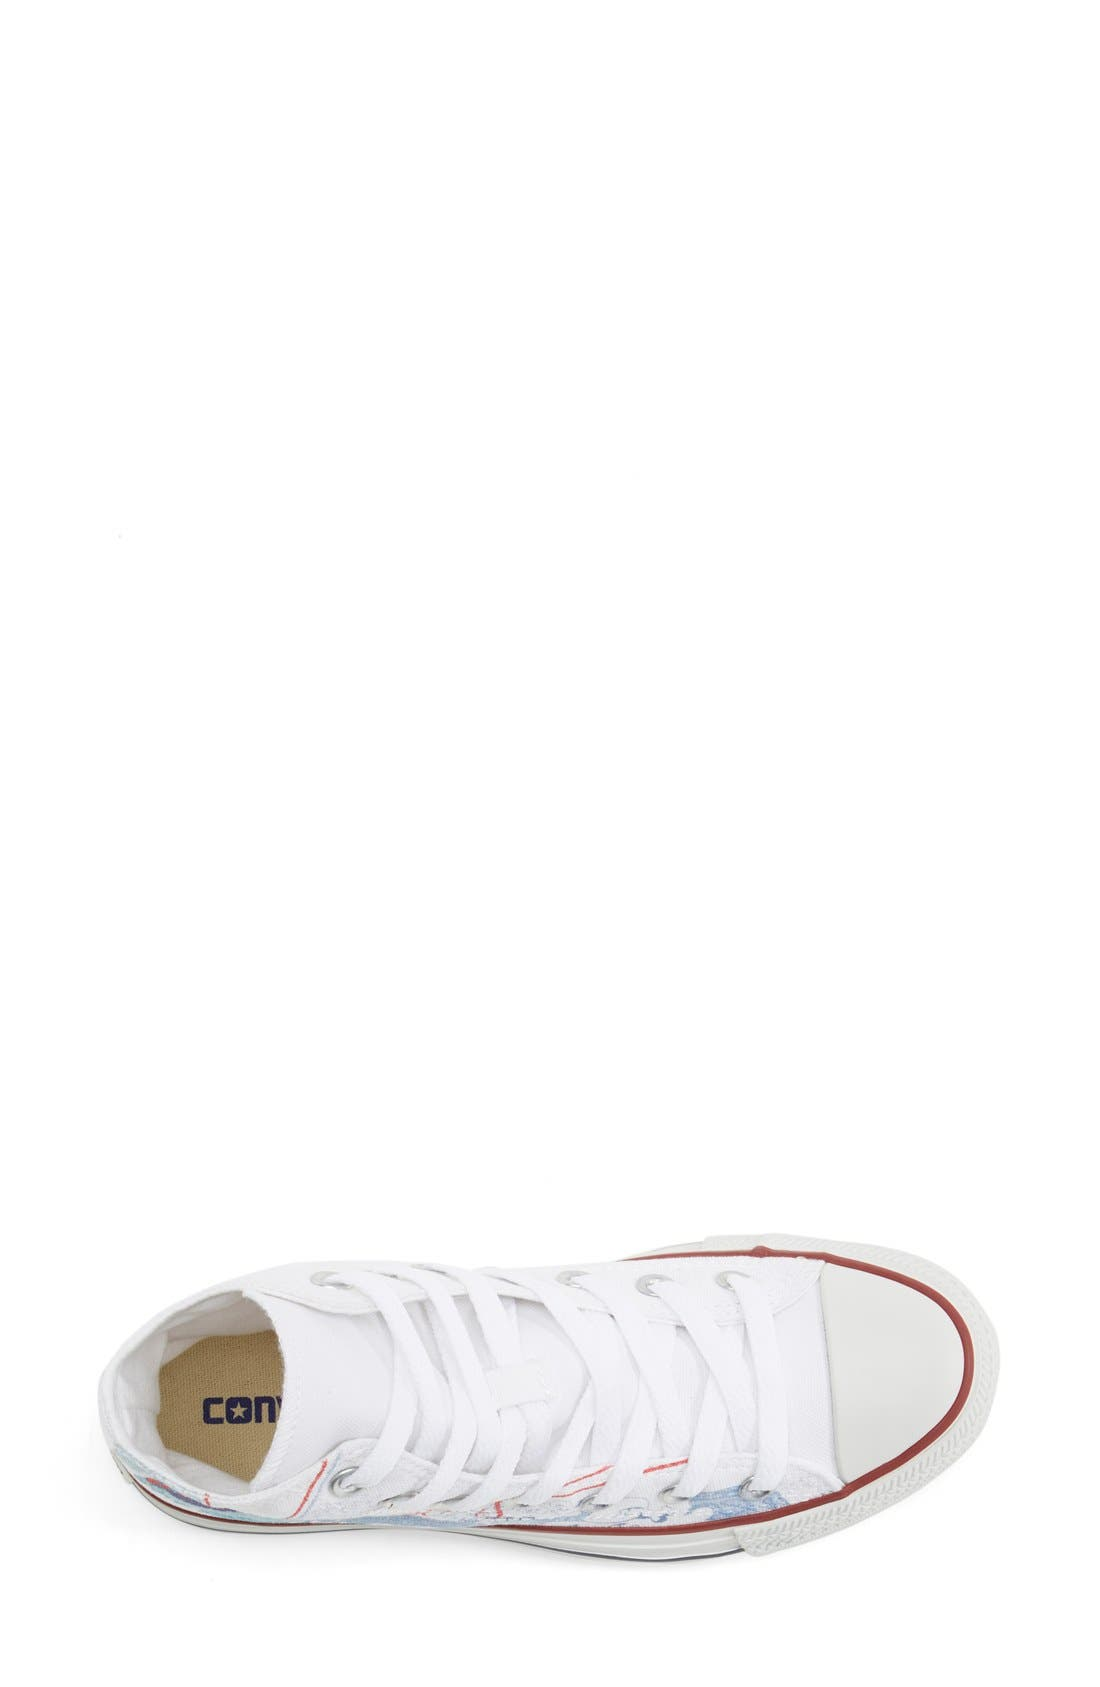 Alternate Image 3  - Converse Chuck Taylor® All Star® 'Made By You - Los Angeles' High Top Sneaker (Women)